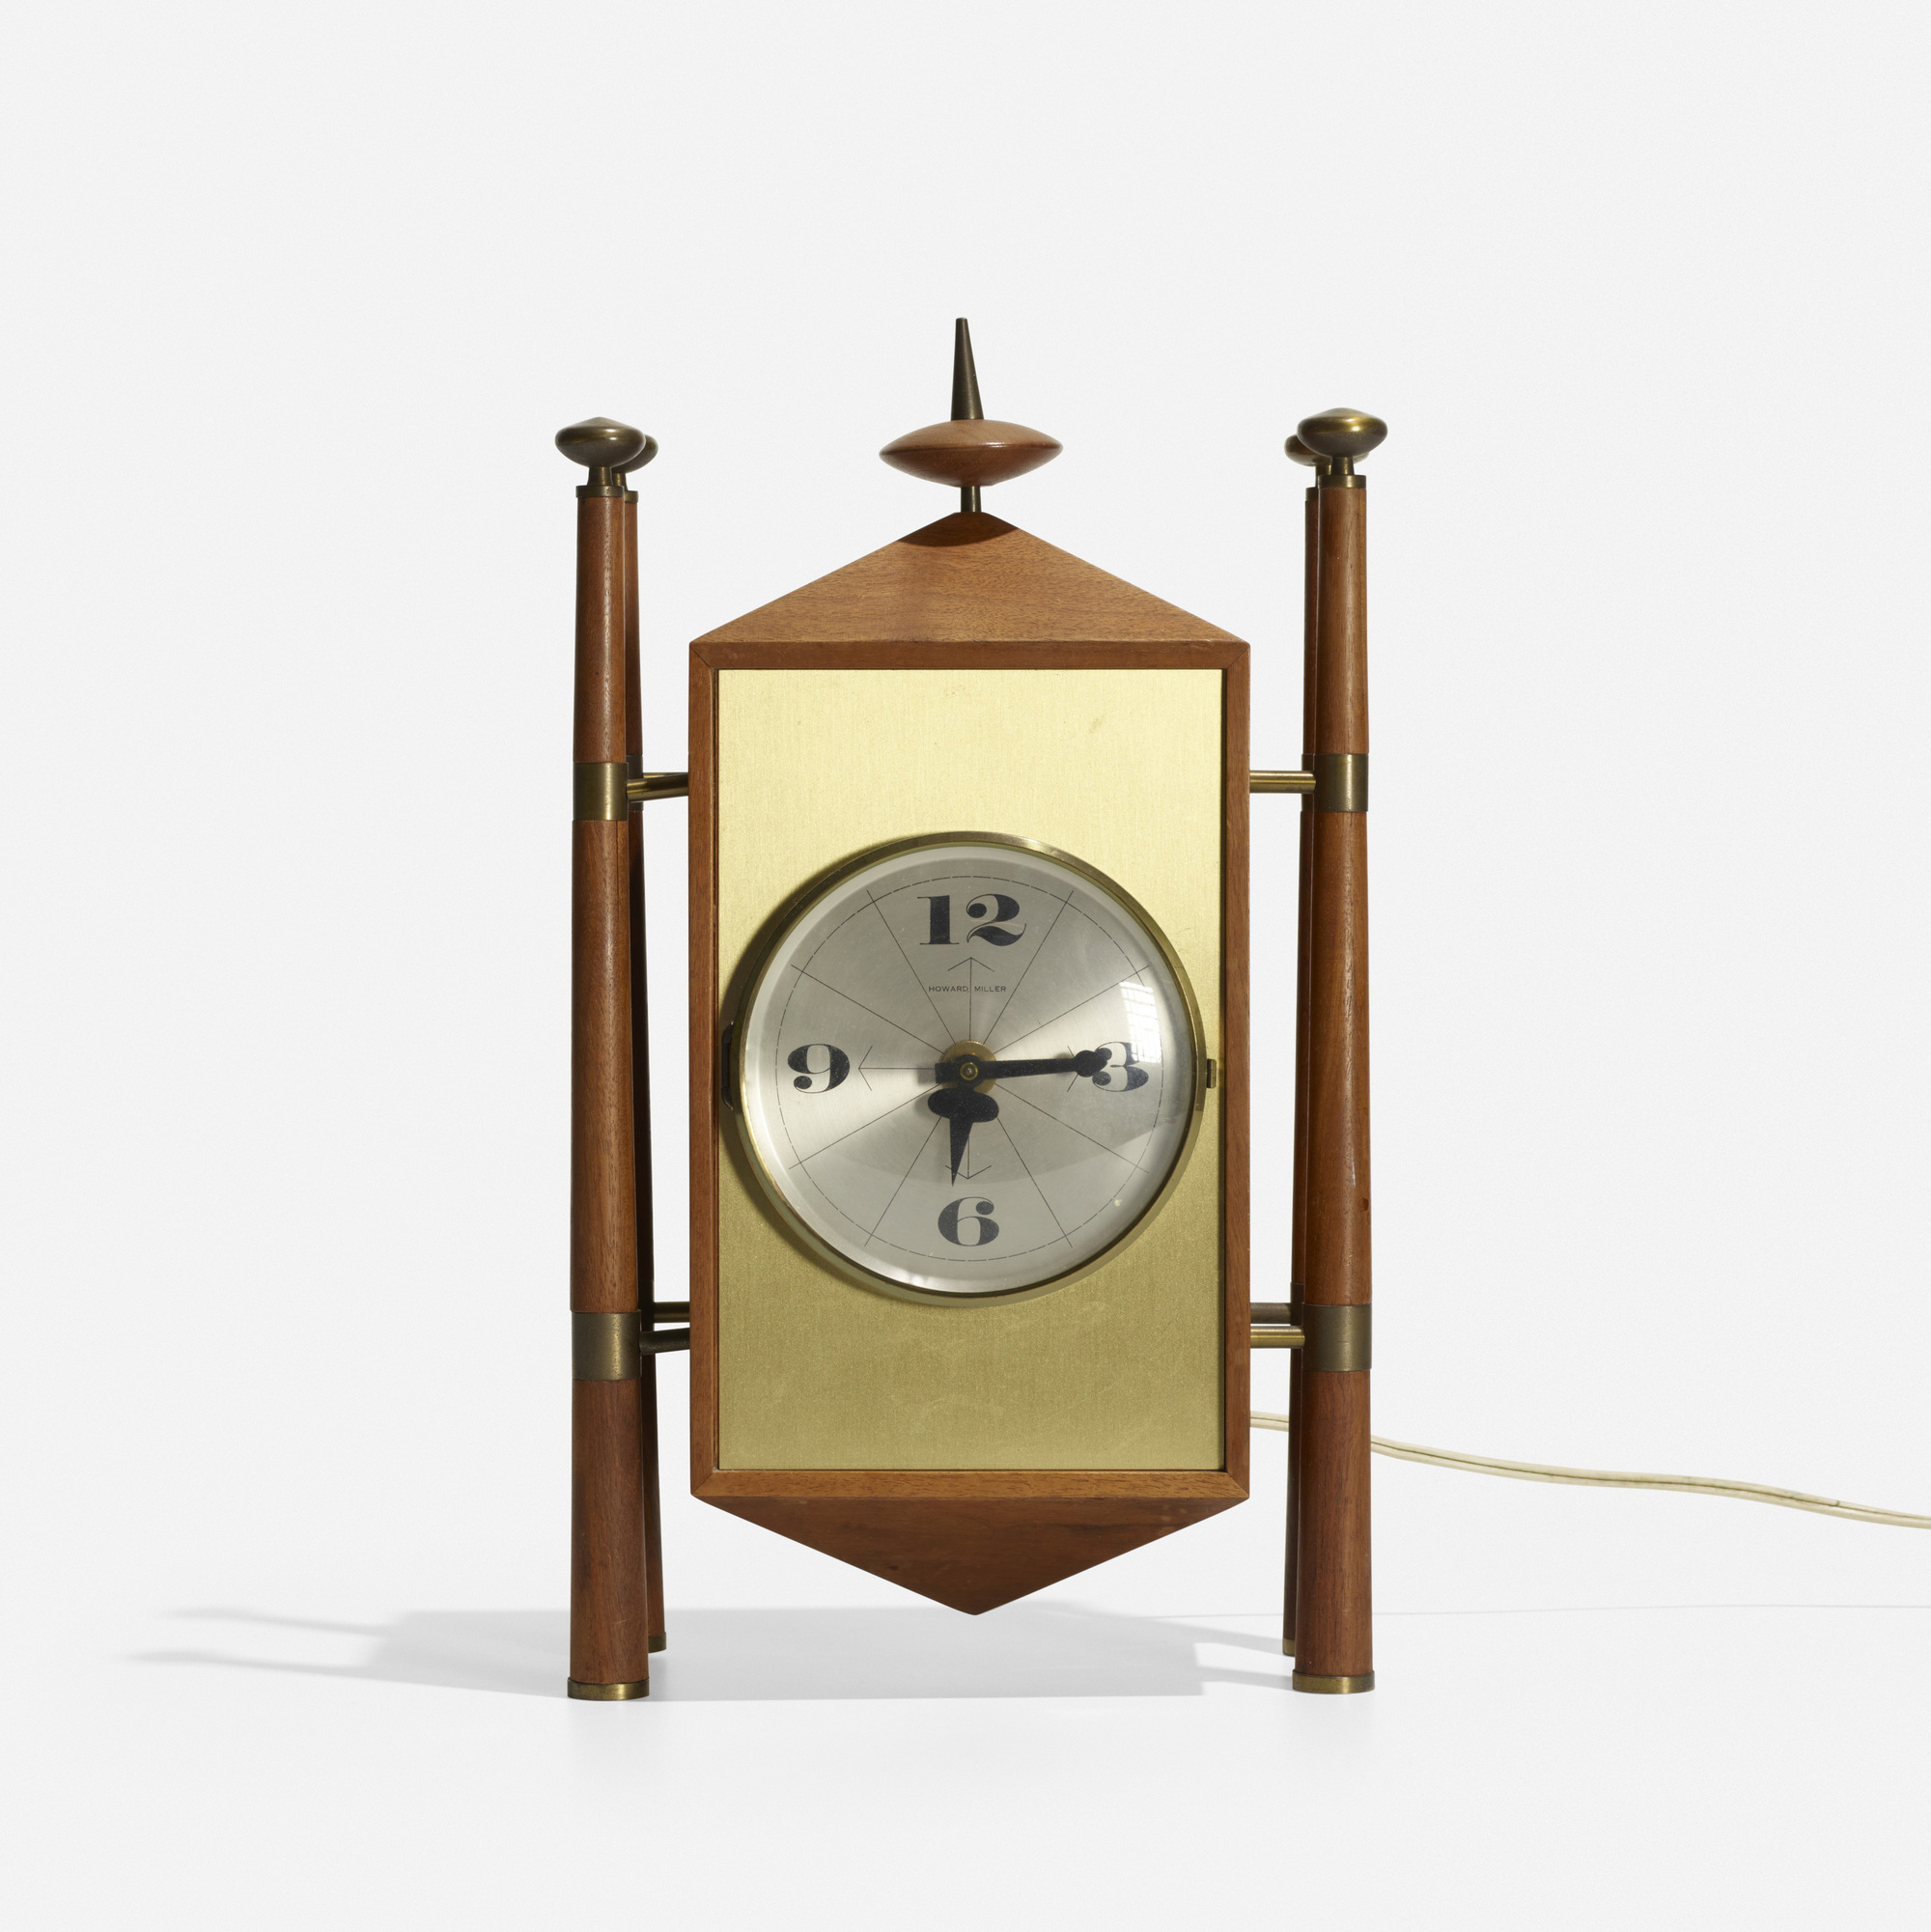 124: George Nelson & Associates / Baroque table clock, model 2255 (2 of 3)